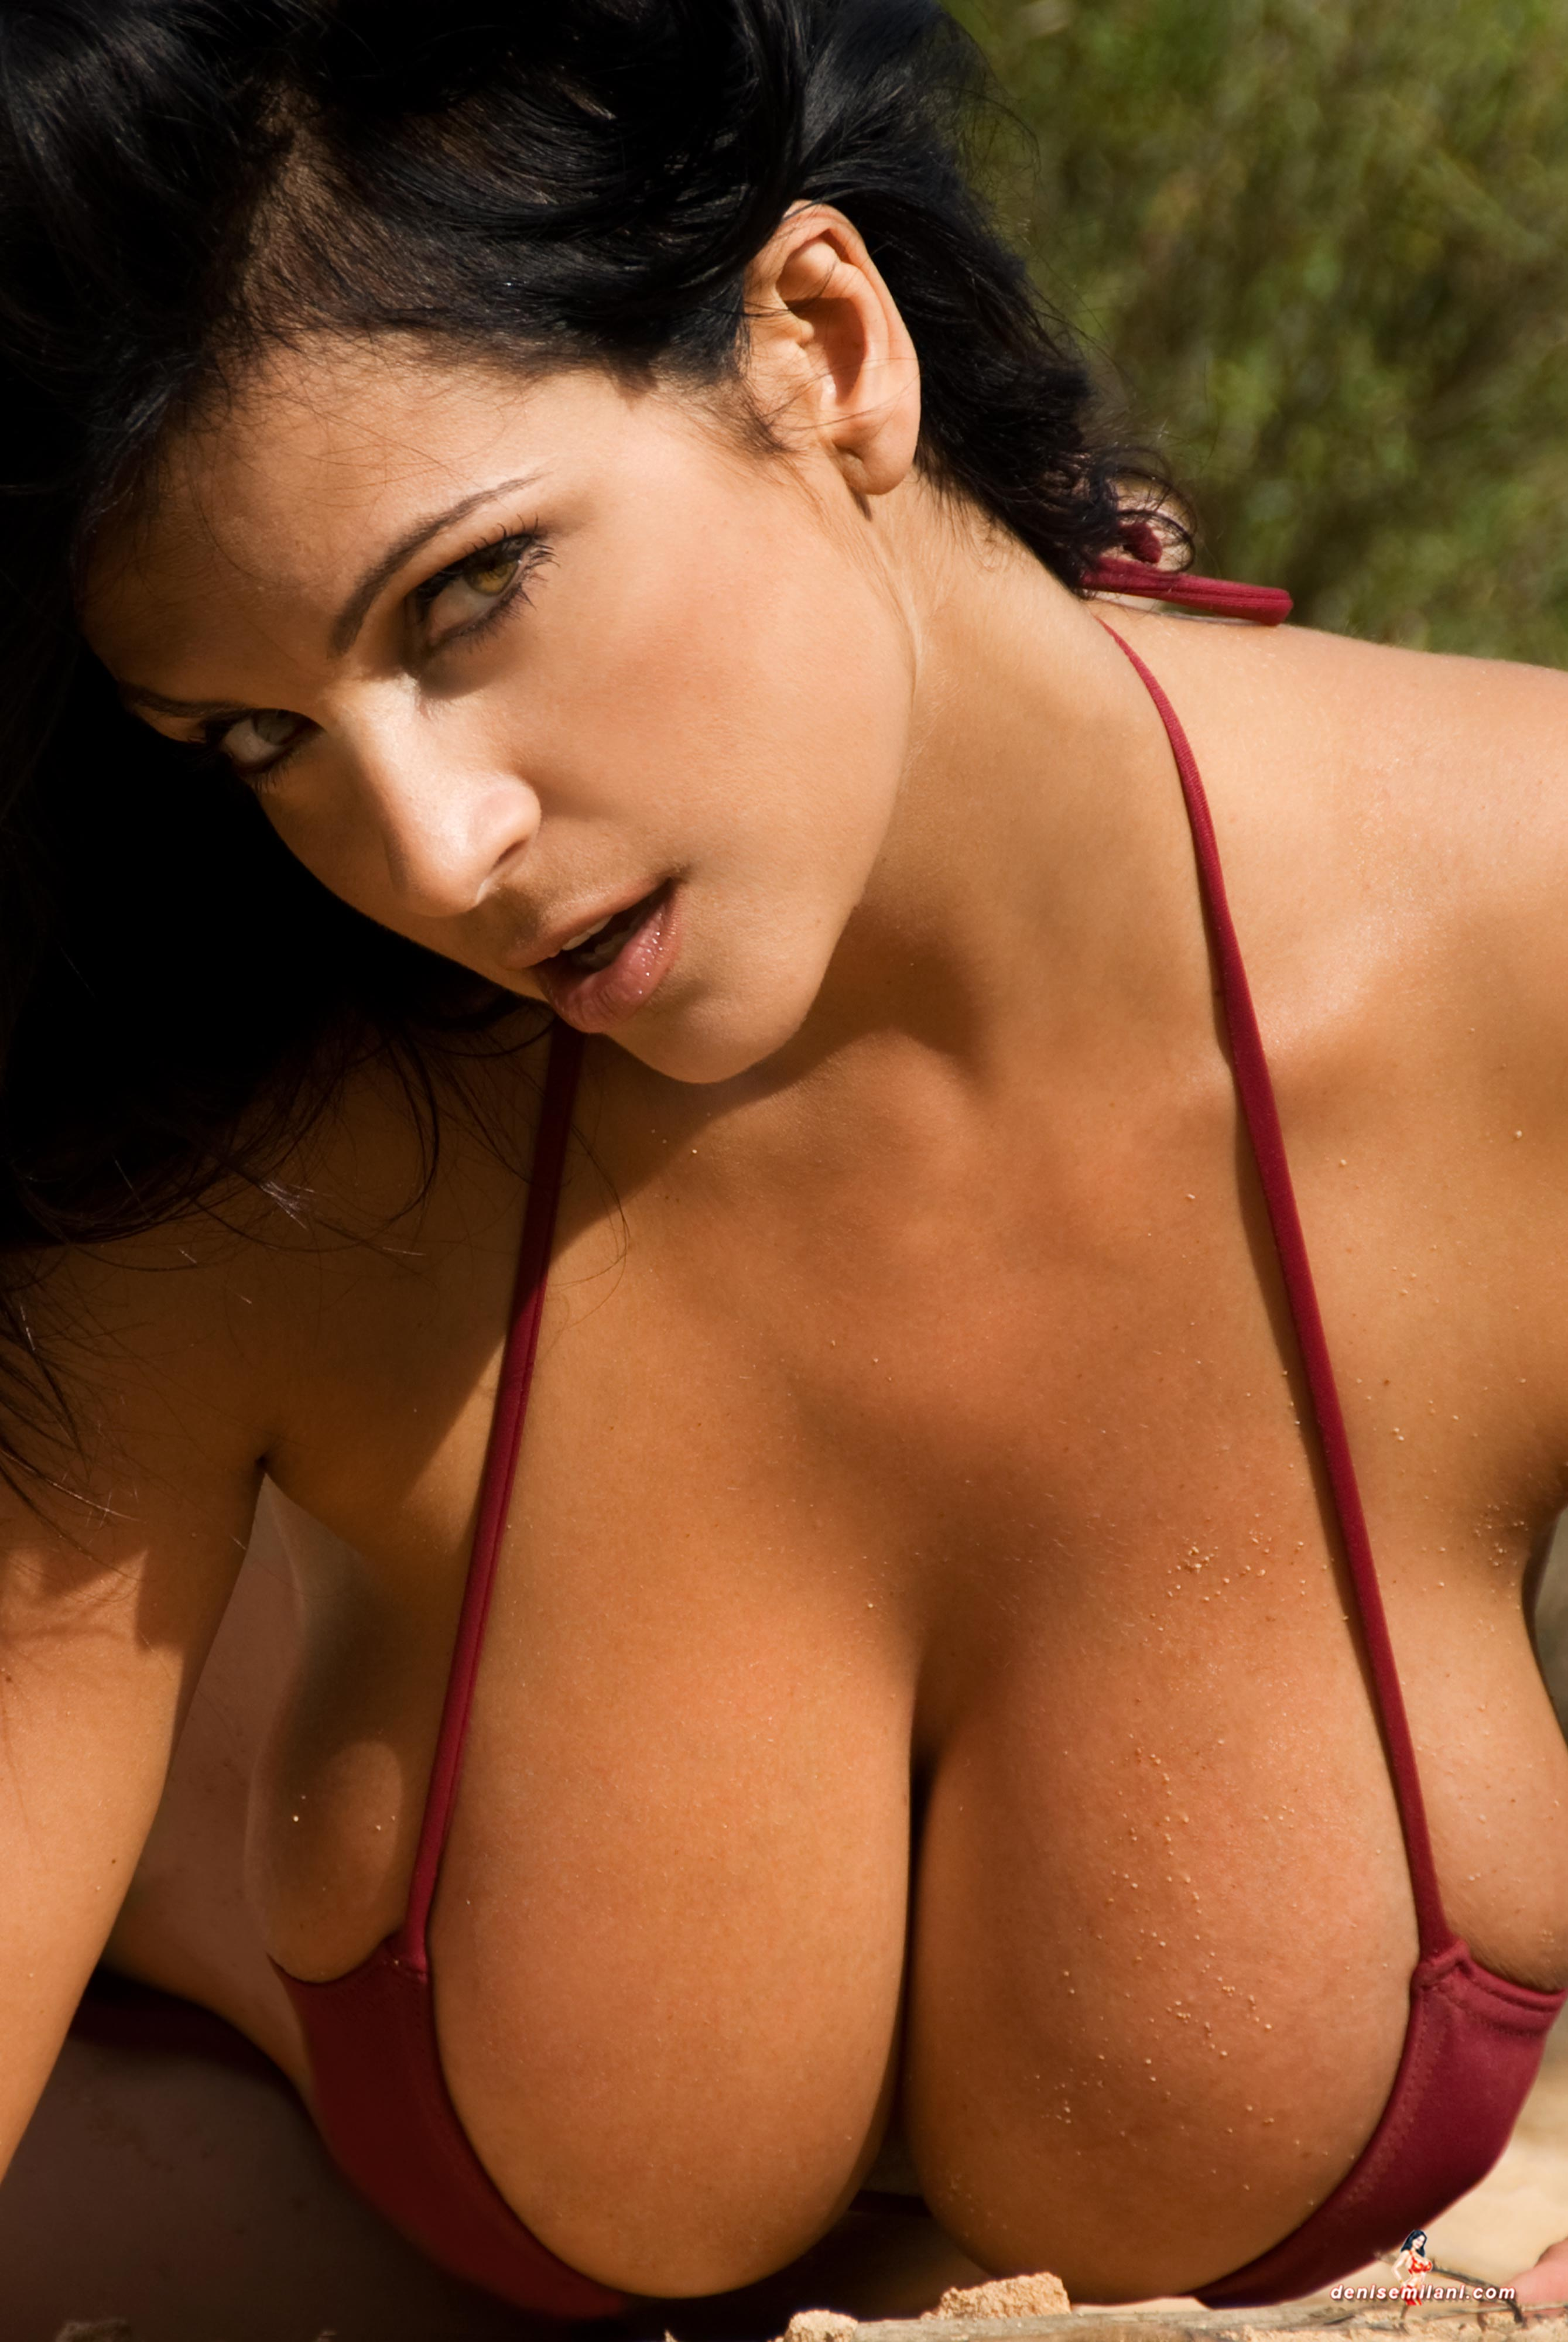 Naked Women With Big Natural Boobs